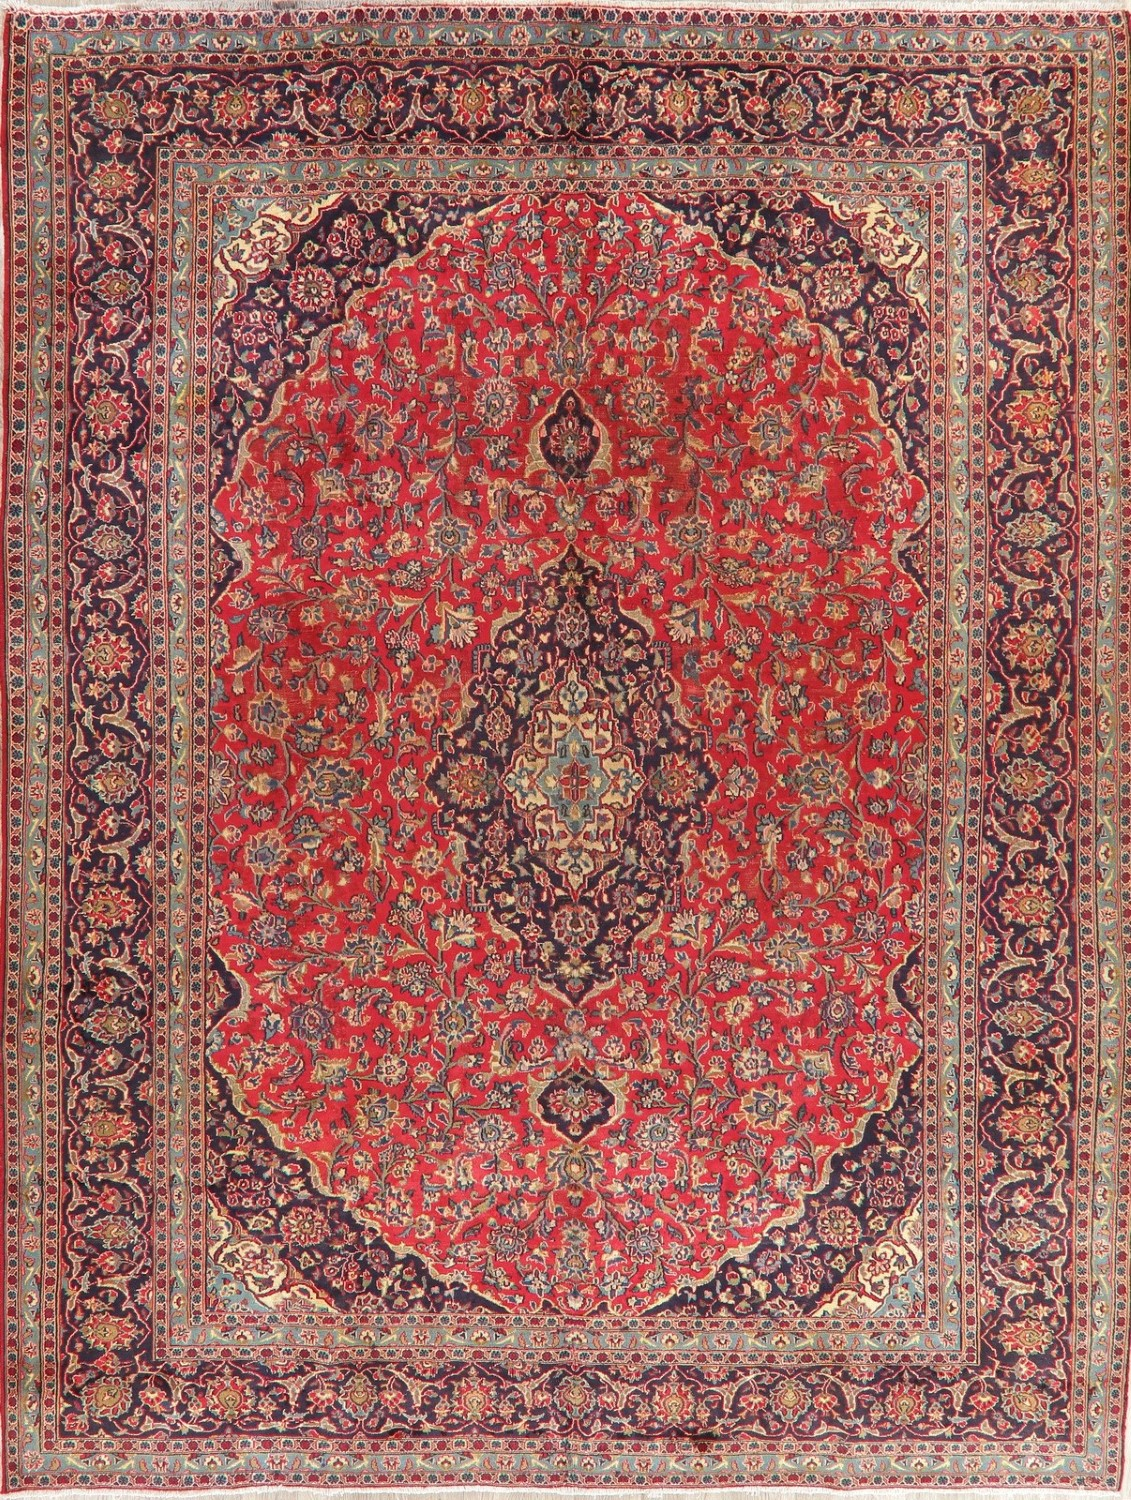 Antique Traditional Floral Persian Area Rug Oriental Hand